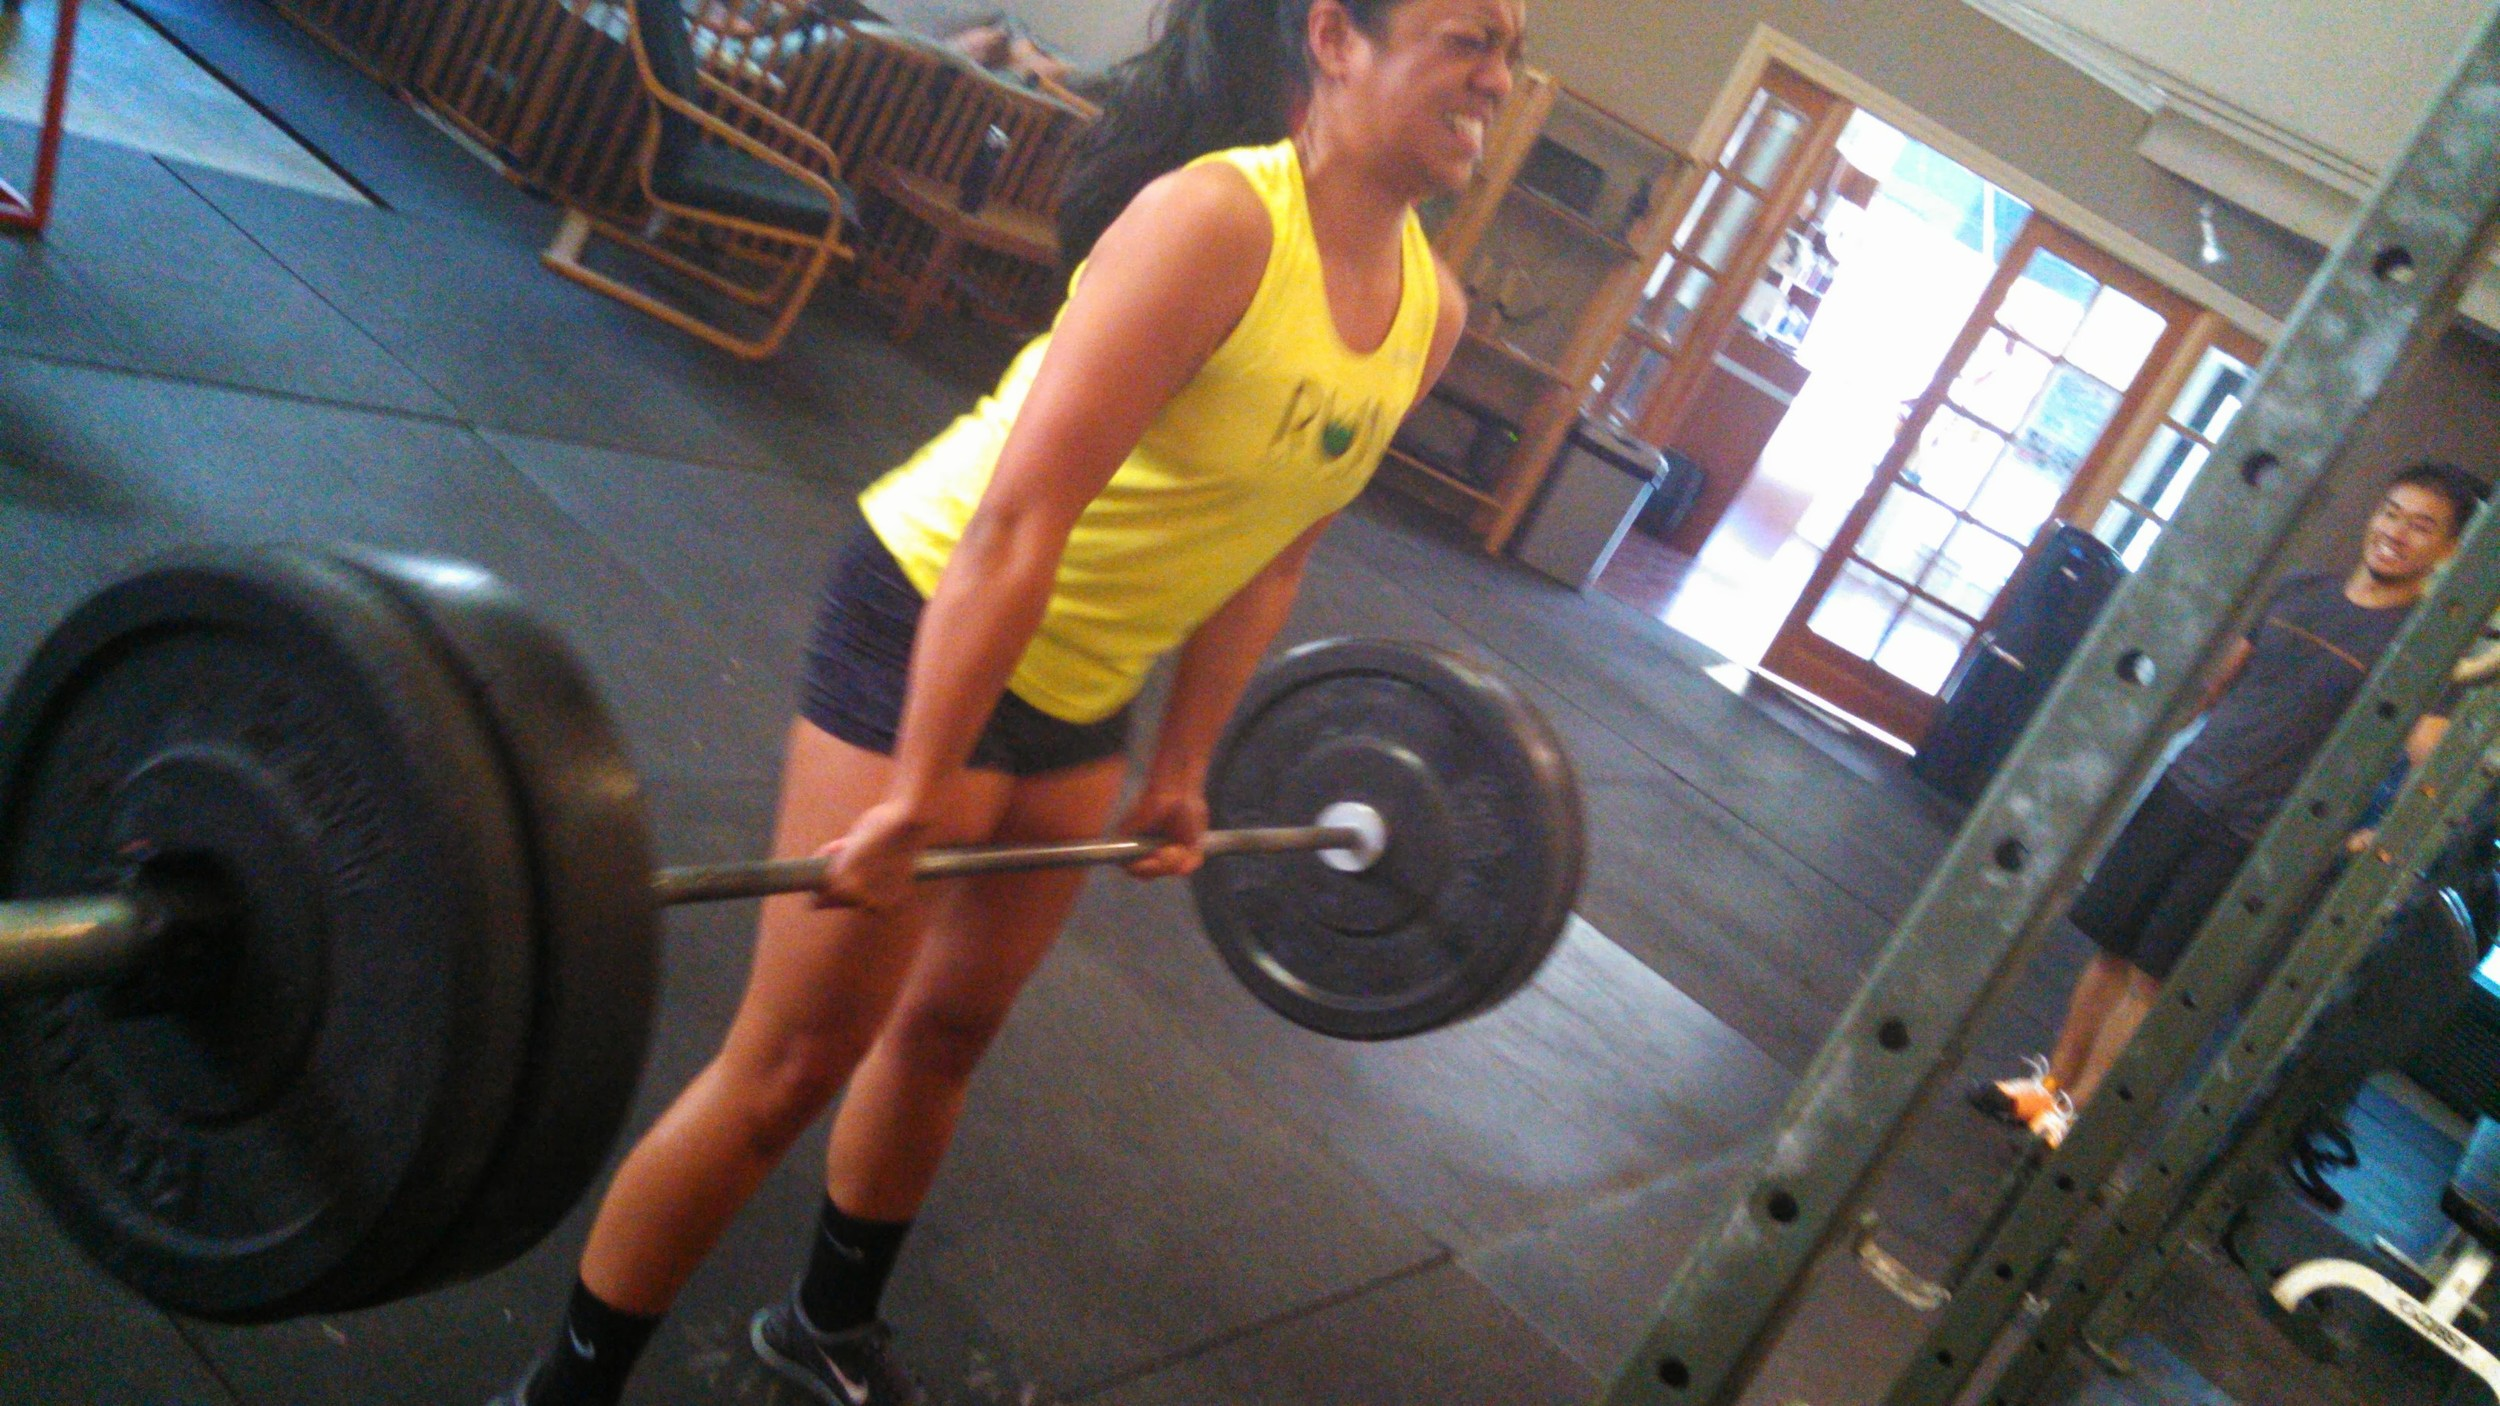 Cayla fights for that #180 deadlift lockout and gets it!